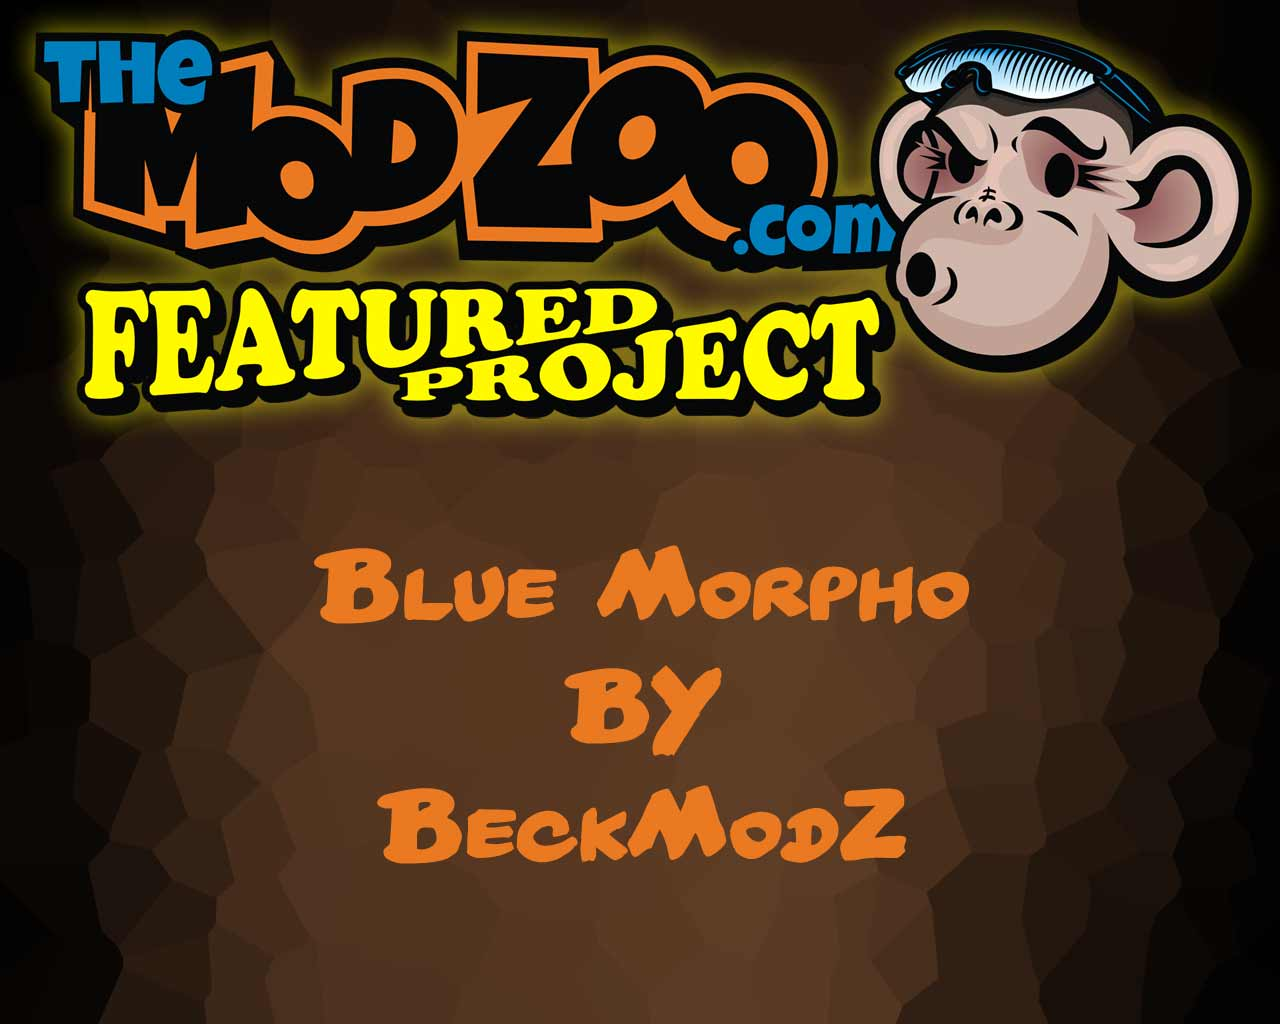 featured_project_blue_morpho_beckmodz